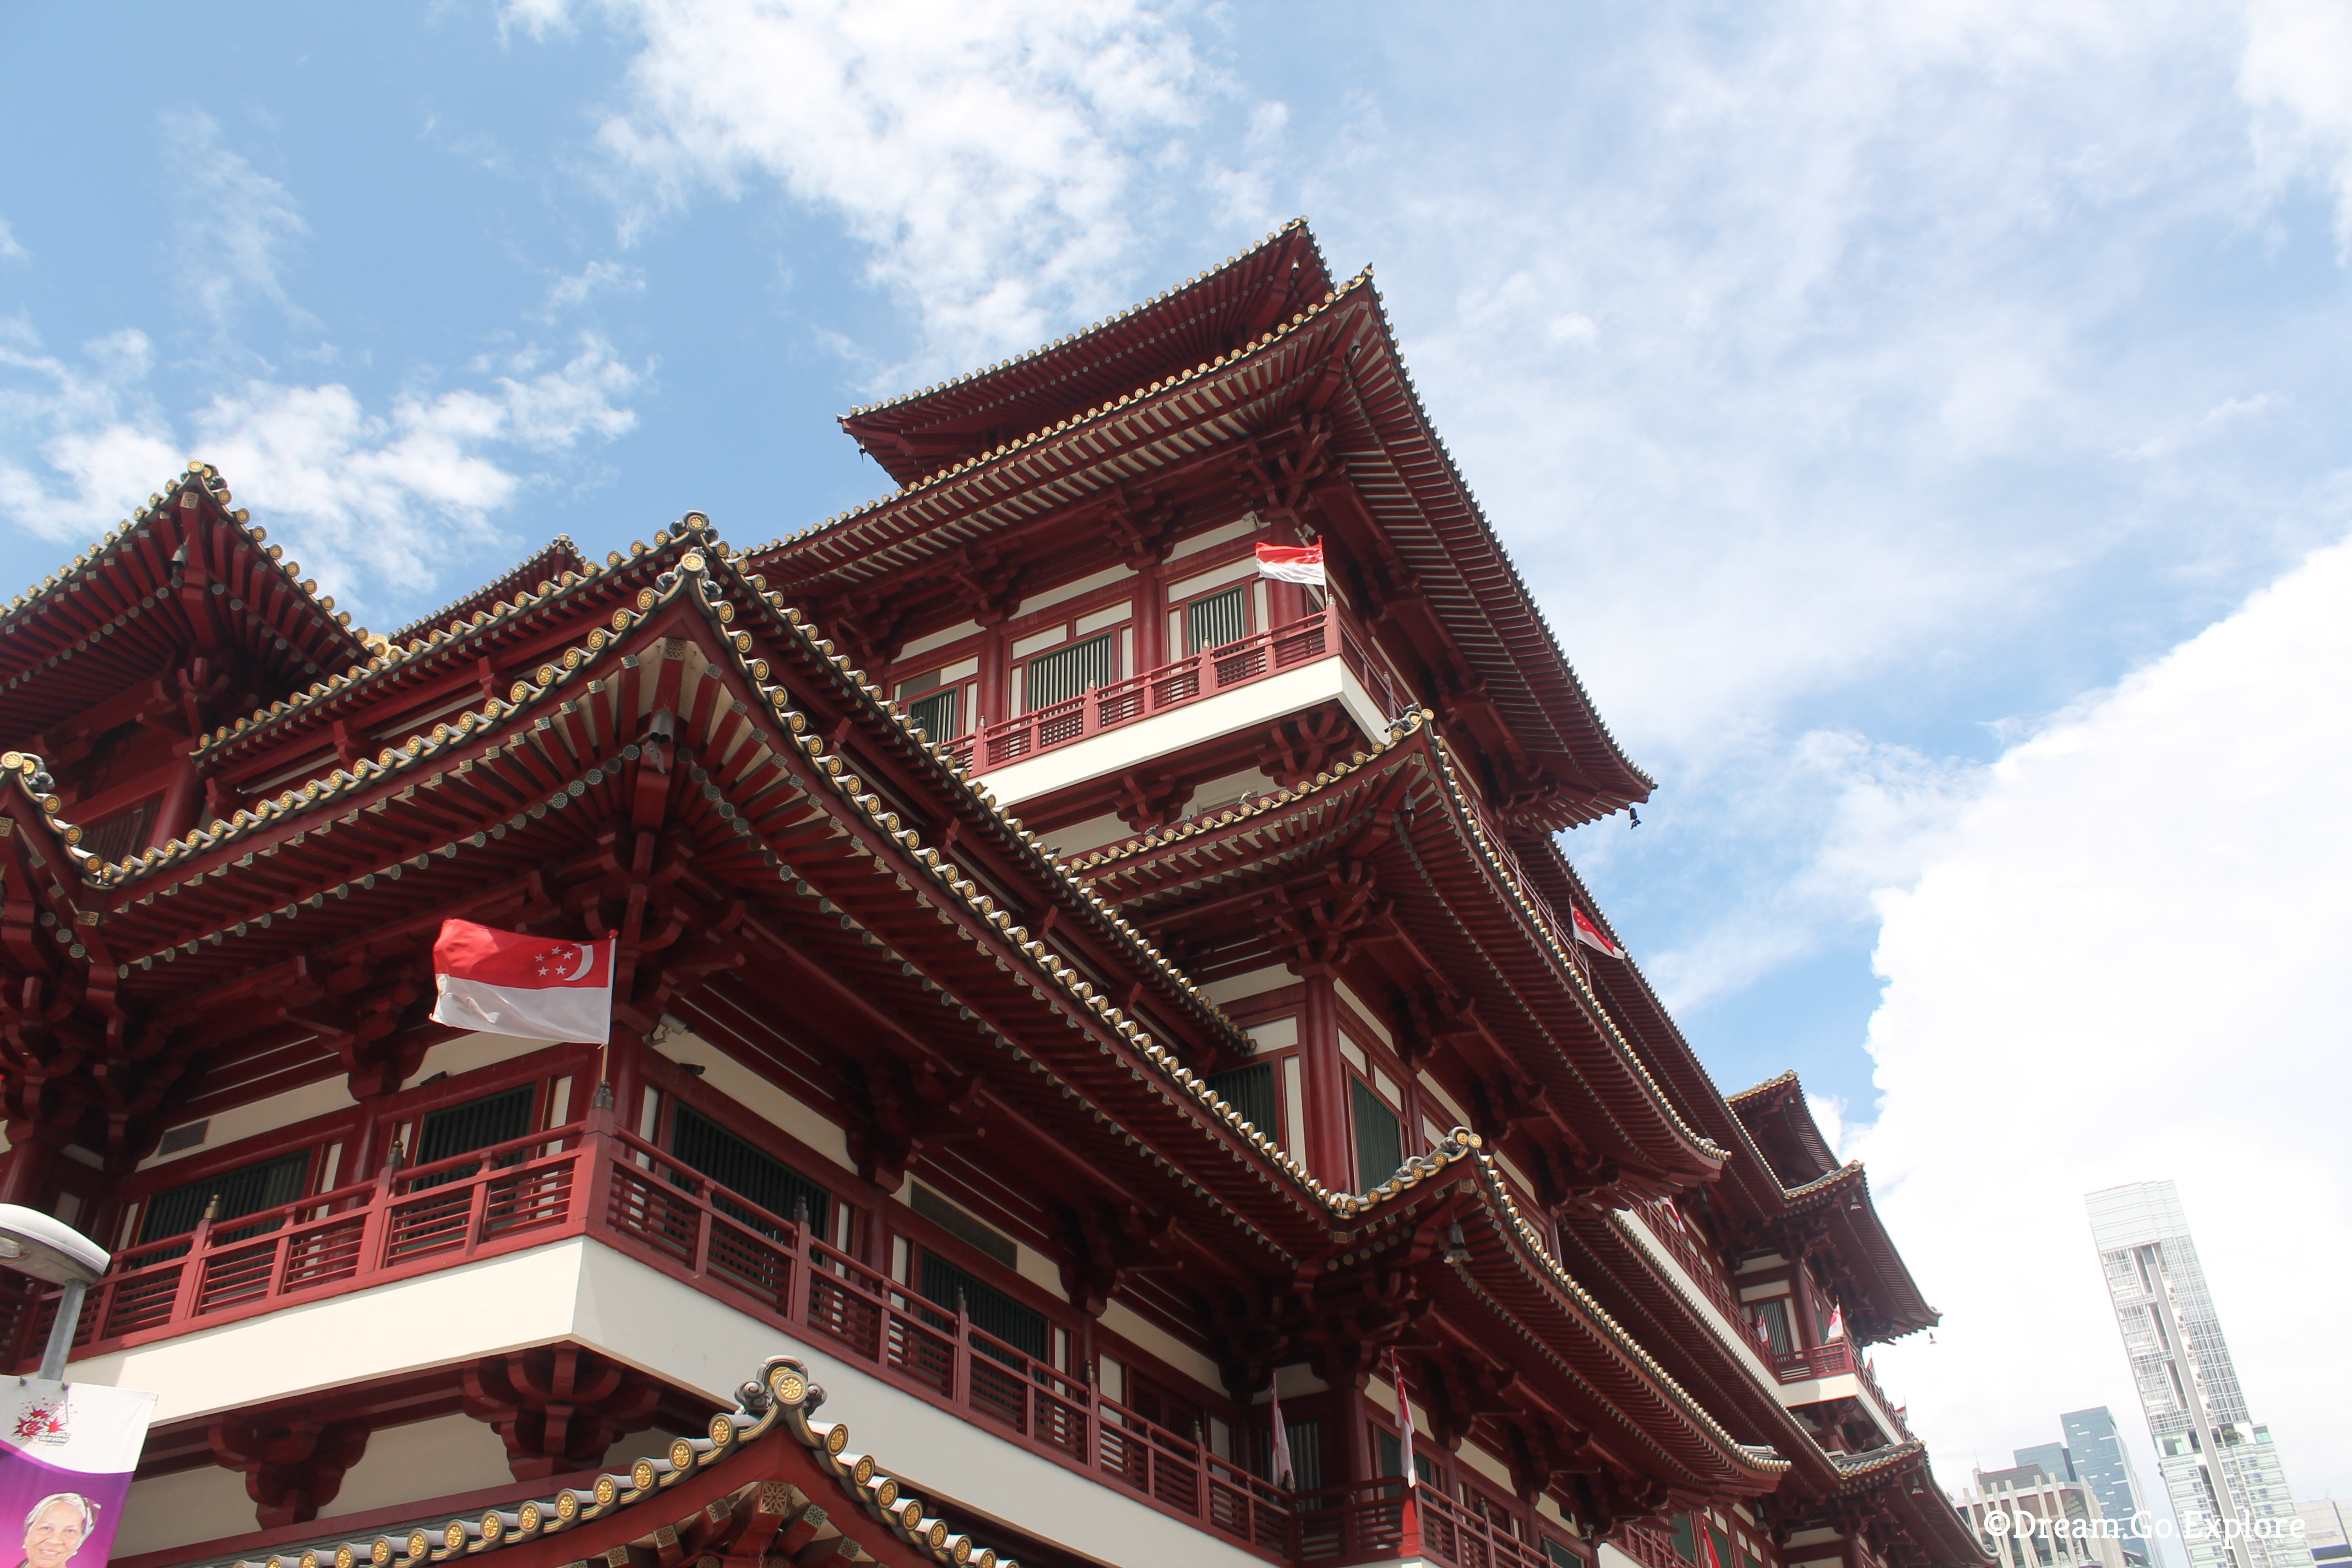 Buddha Tooth Relic Temple & Museum (Tooth Temple, Singapore)-Buddha Tooth Relic Temple & Museum (Zahntempel, Singapur)